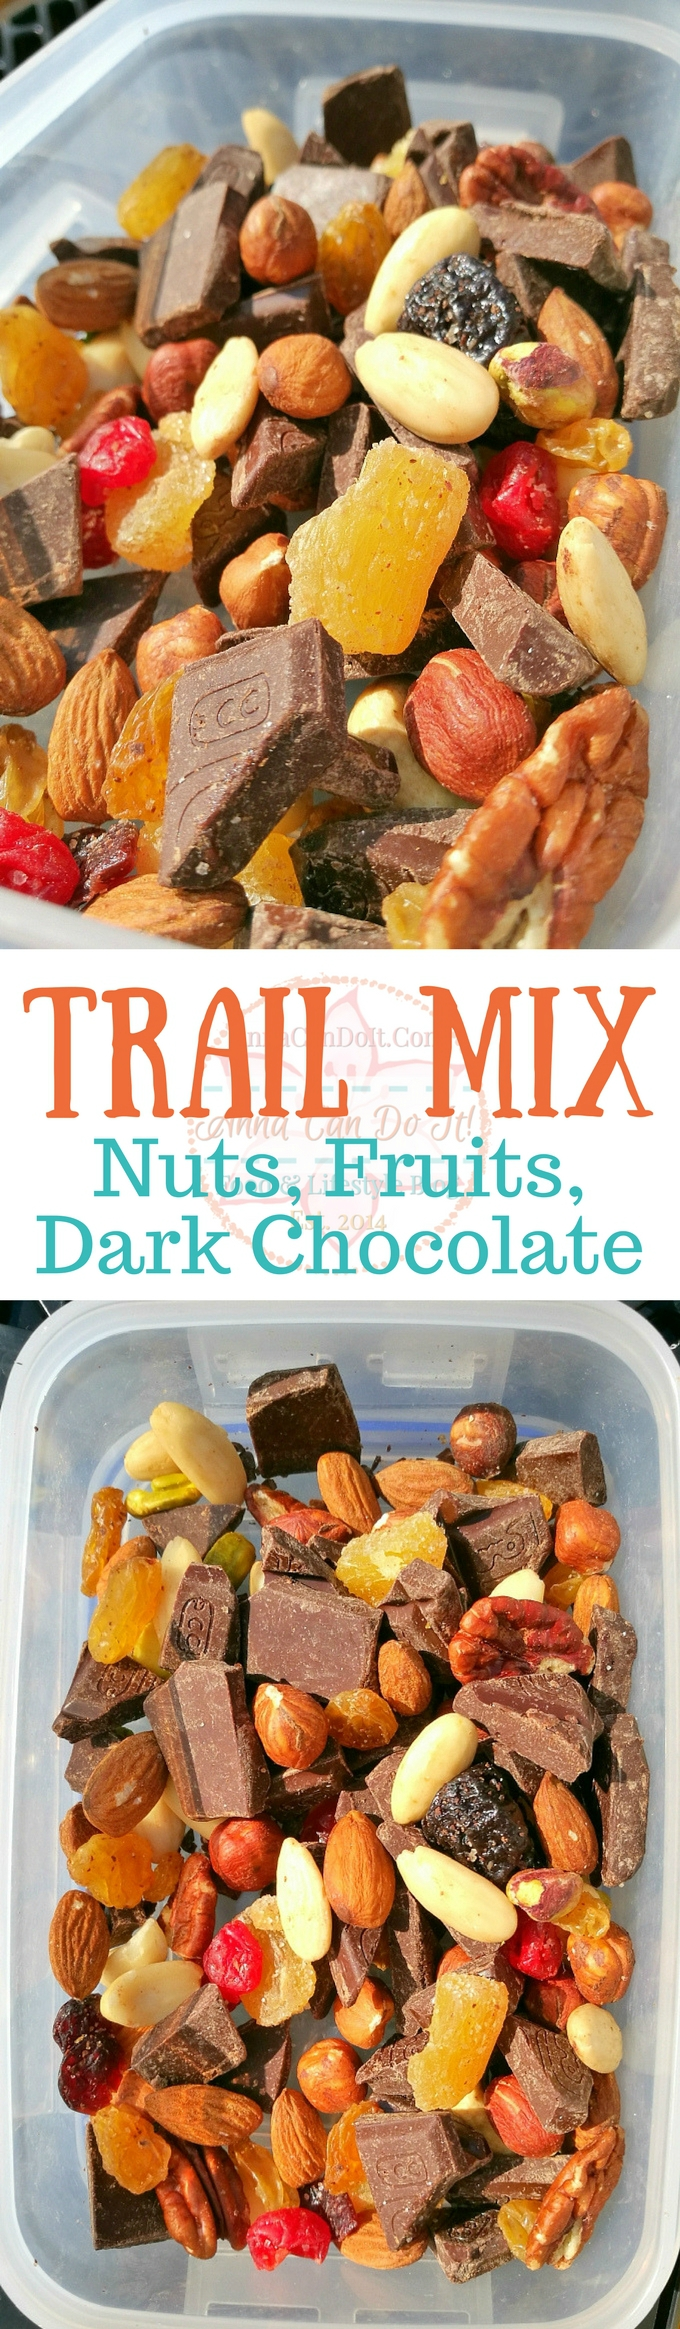 Trail Mix - Nuts, Fruits, Dark Chocolate - Anna Can Do It!